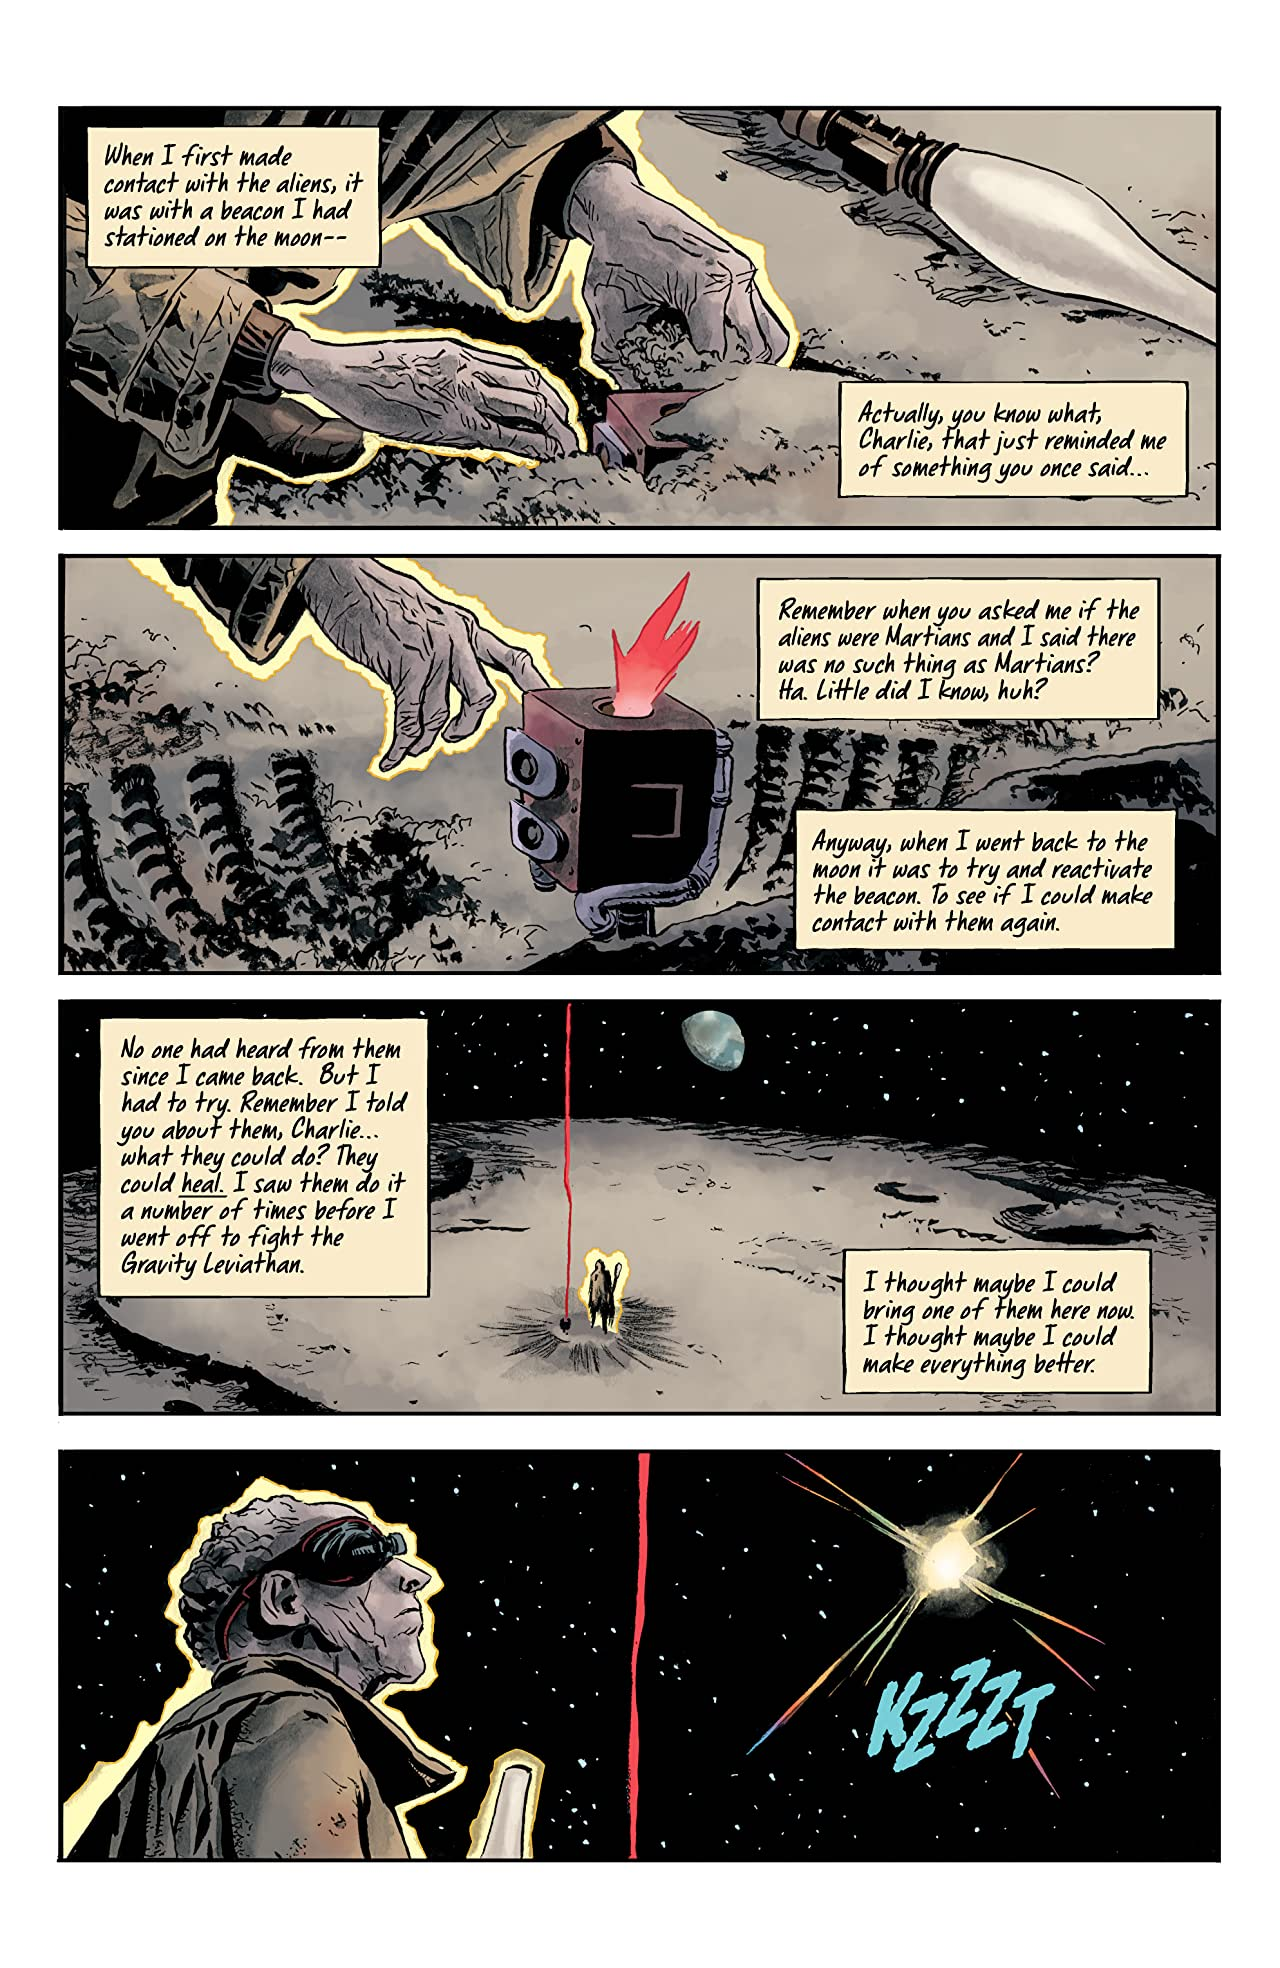 Doctor Star & The Kingdom of Lost Tomorrows: From the World of Black Hammer #3